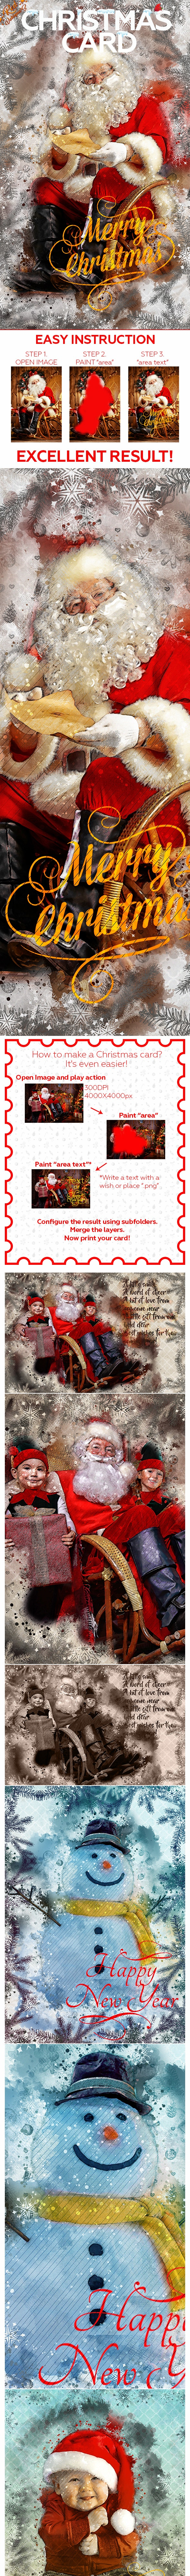 Christmas Card Photoshop Action - Photo Effects Actions